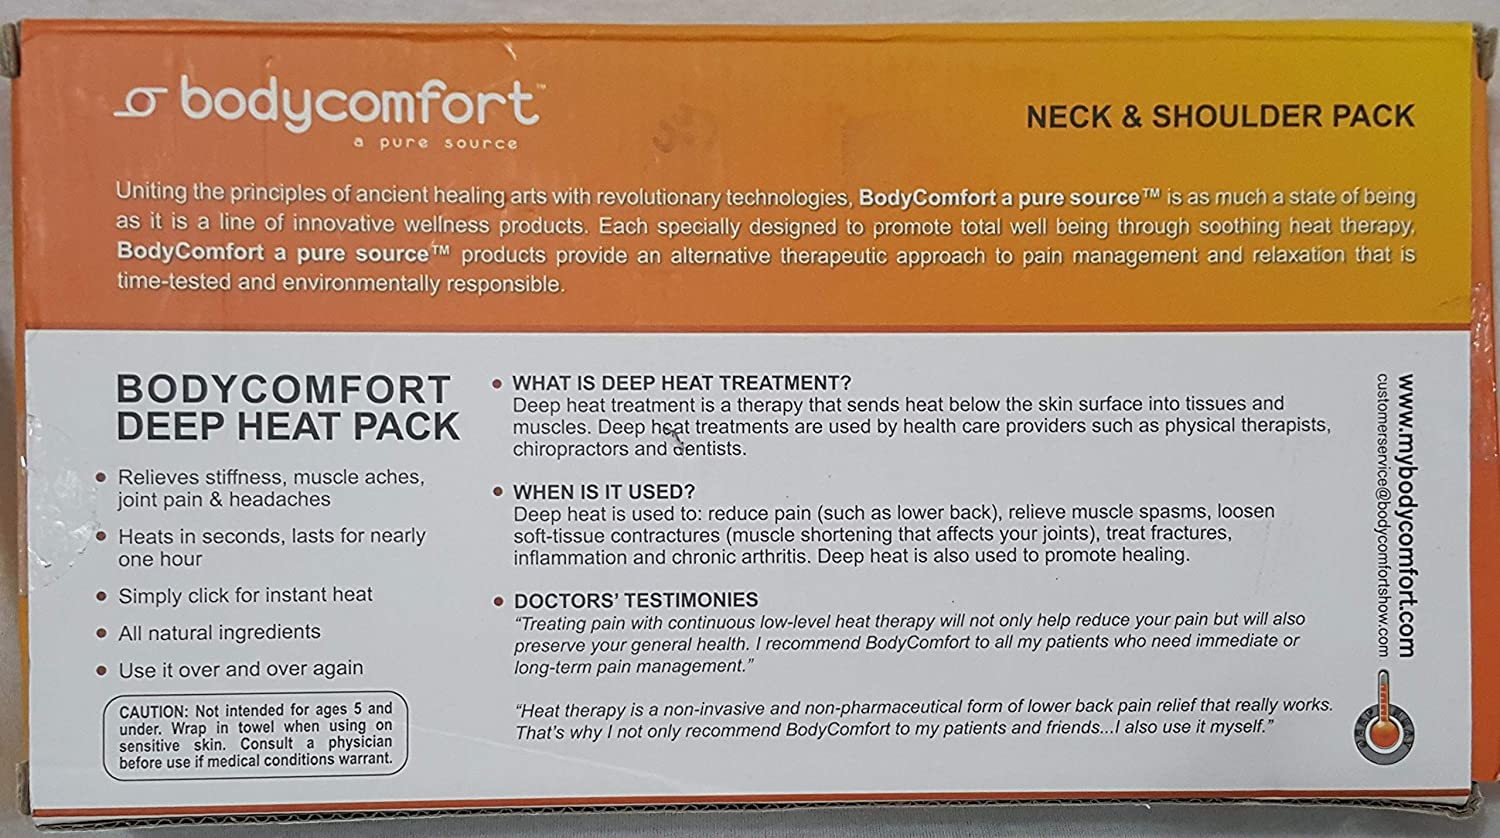 Amazon.com: Instant Heat Pack (Neck and Shoulders): Health & Personal Care